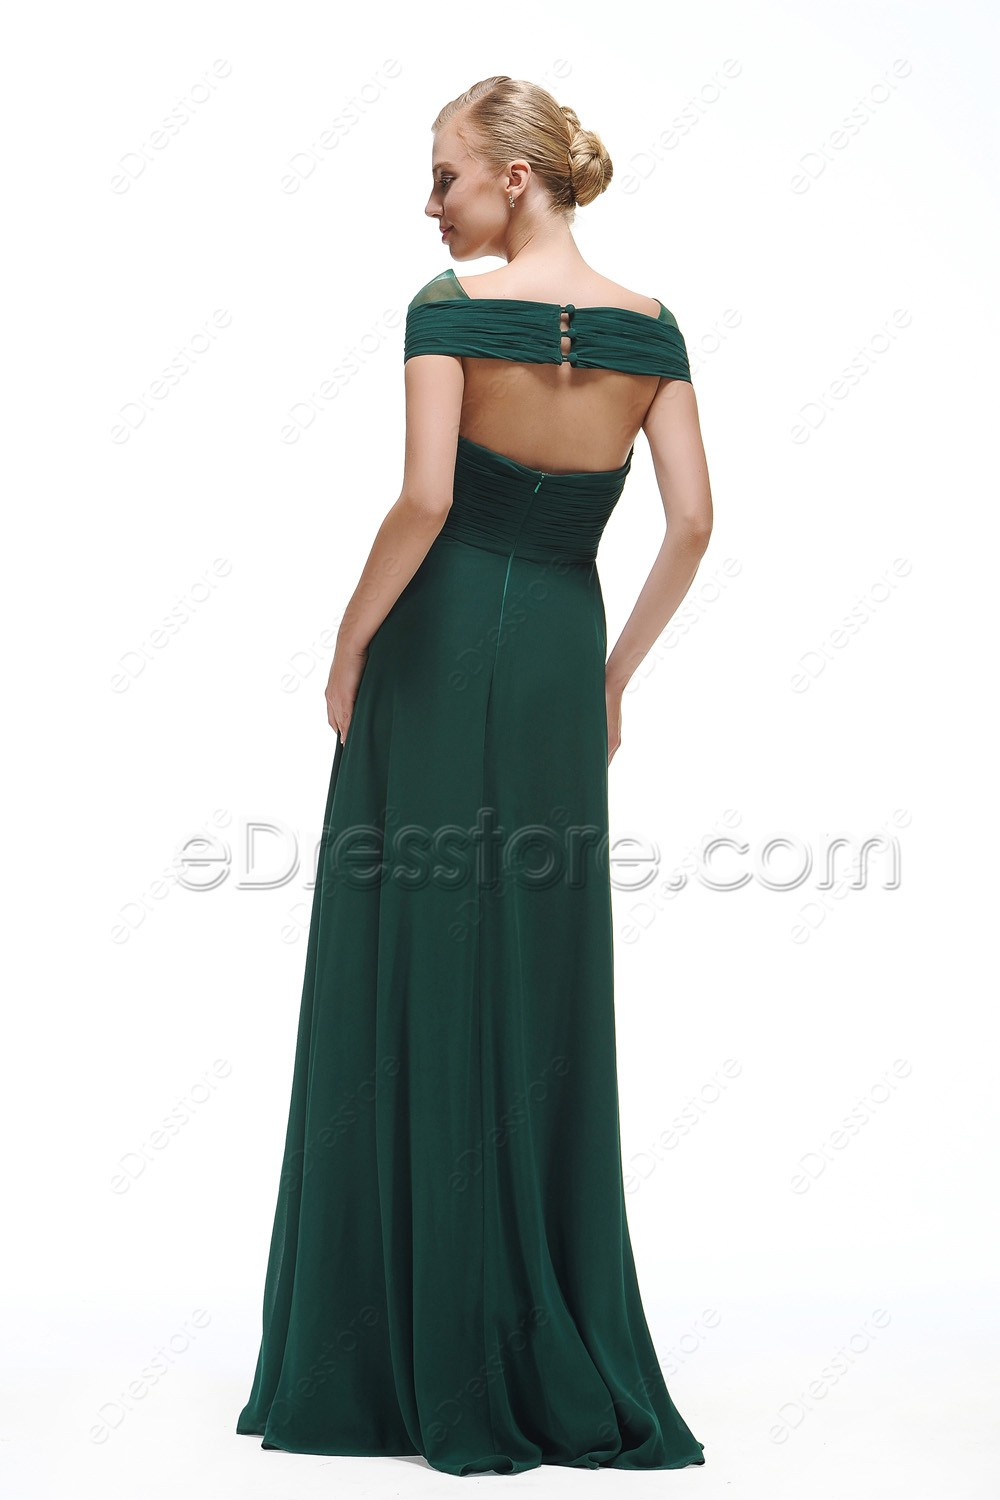 Cap sleeves forest green bridesmaid dresses long ombrellifo Choice Image